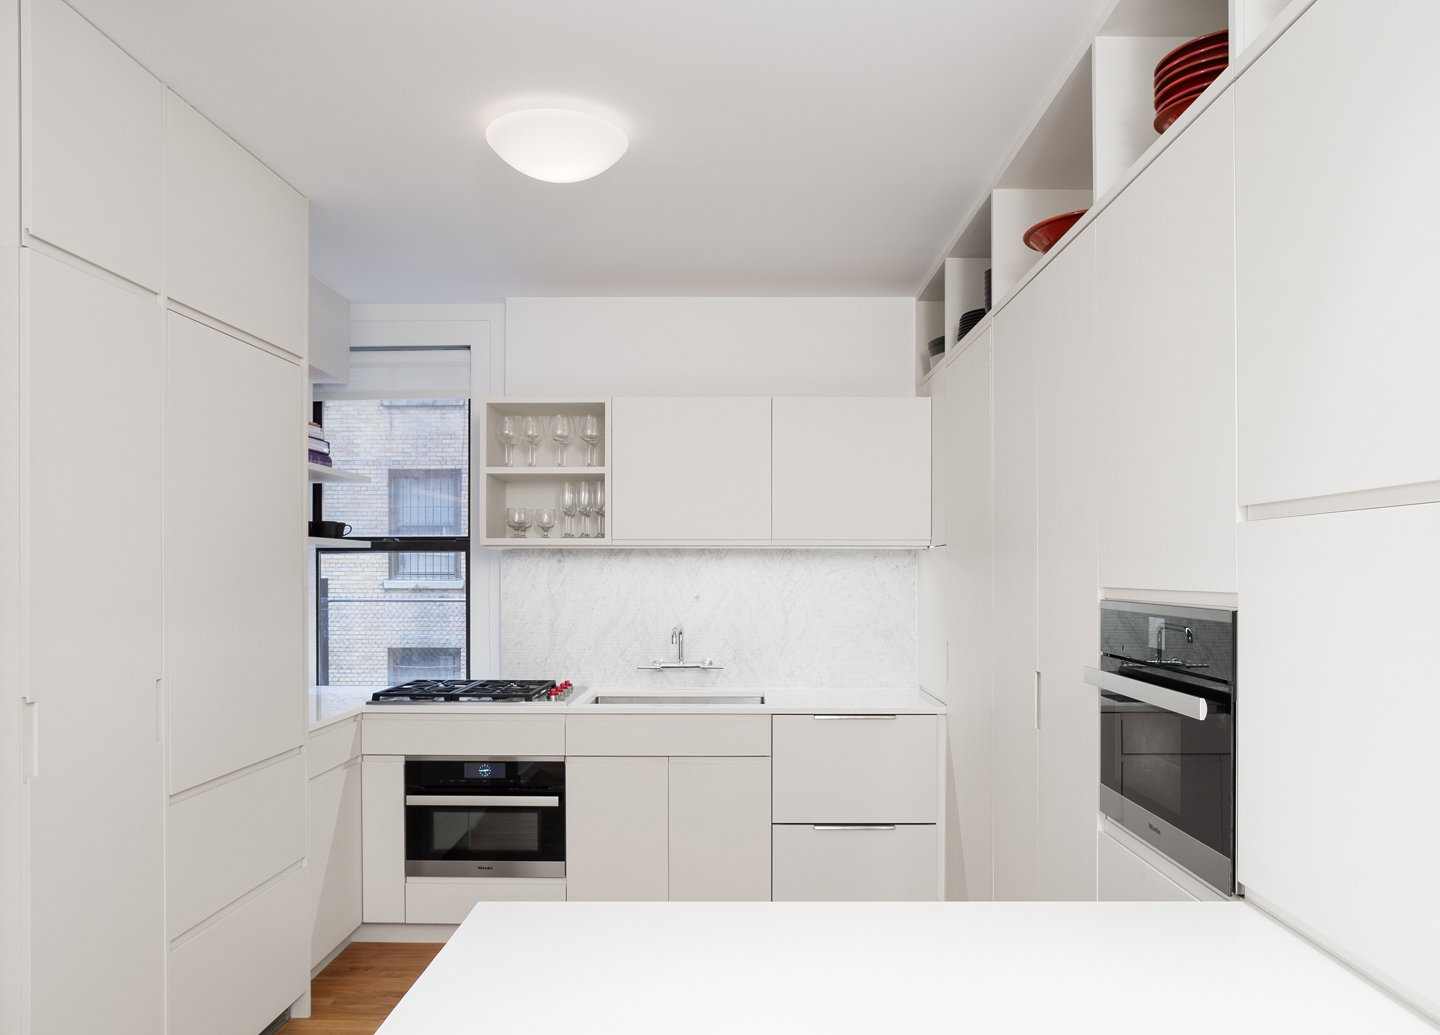 The Refrigerator, dishwasher and clothes washer are concealed behind cabinet doors and cabinets extended to the ceiling to maximize usable storage space.  Prewar Modern Upgrade by kane architecture and urban design